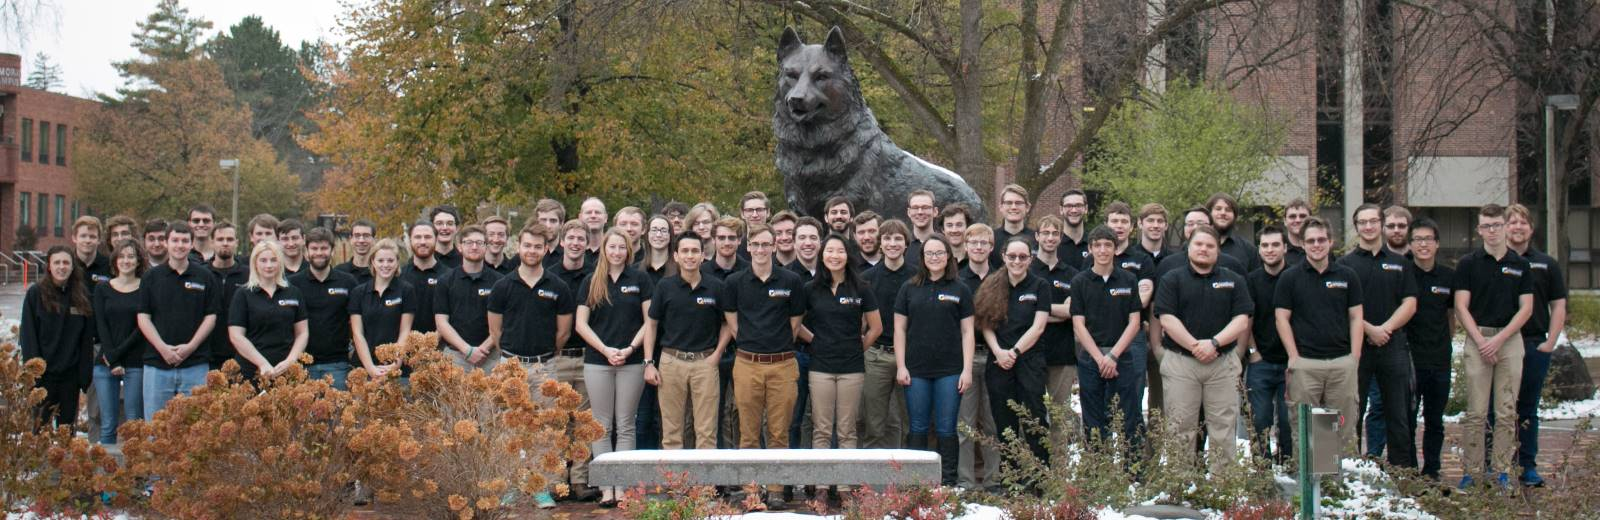 Aerospace Enterprise in front of the Husky Statue